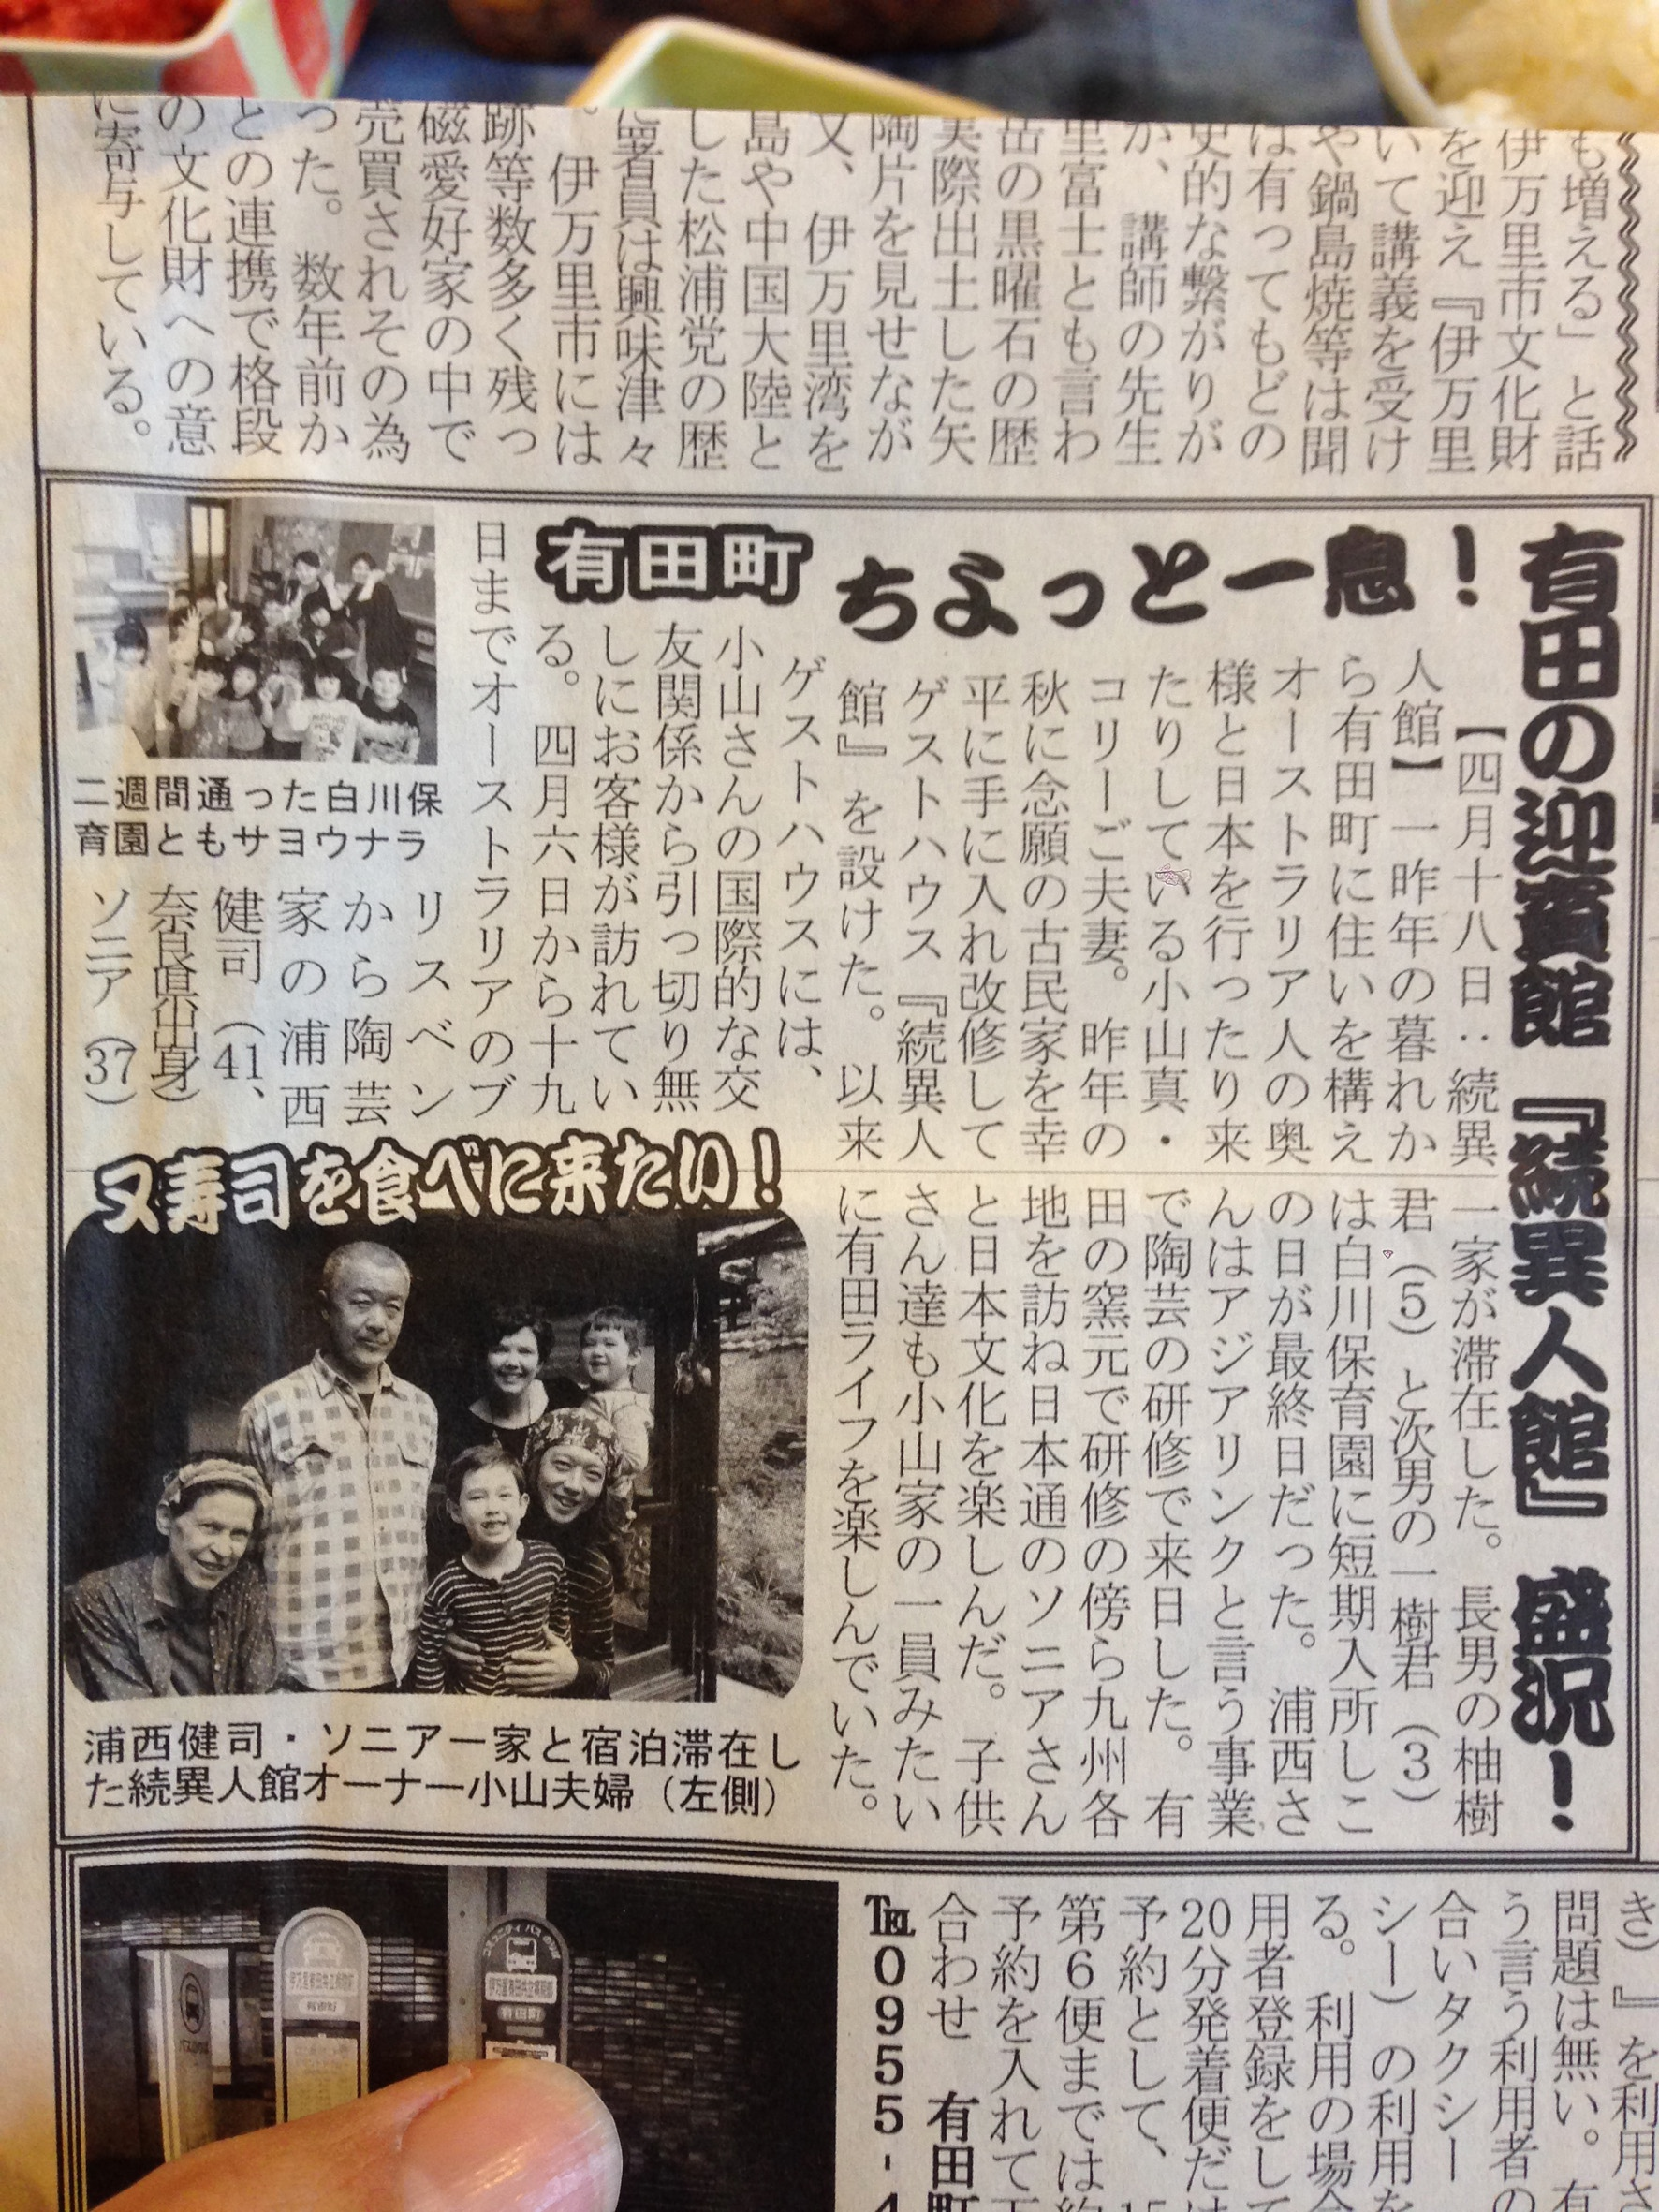 Imari Shinbun, Kyushu Japan, April 2014